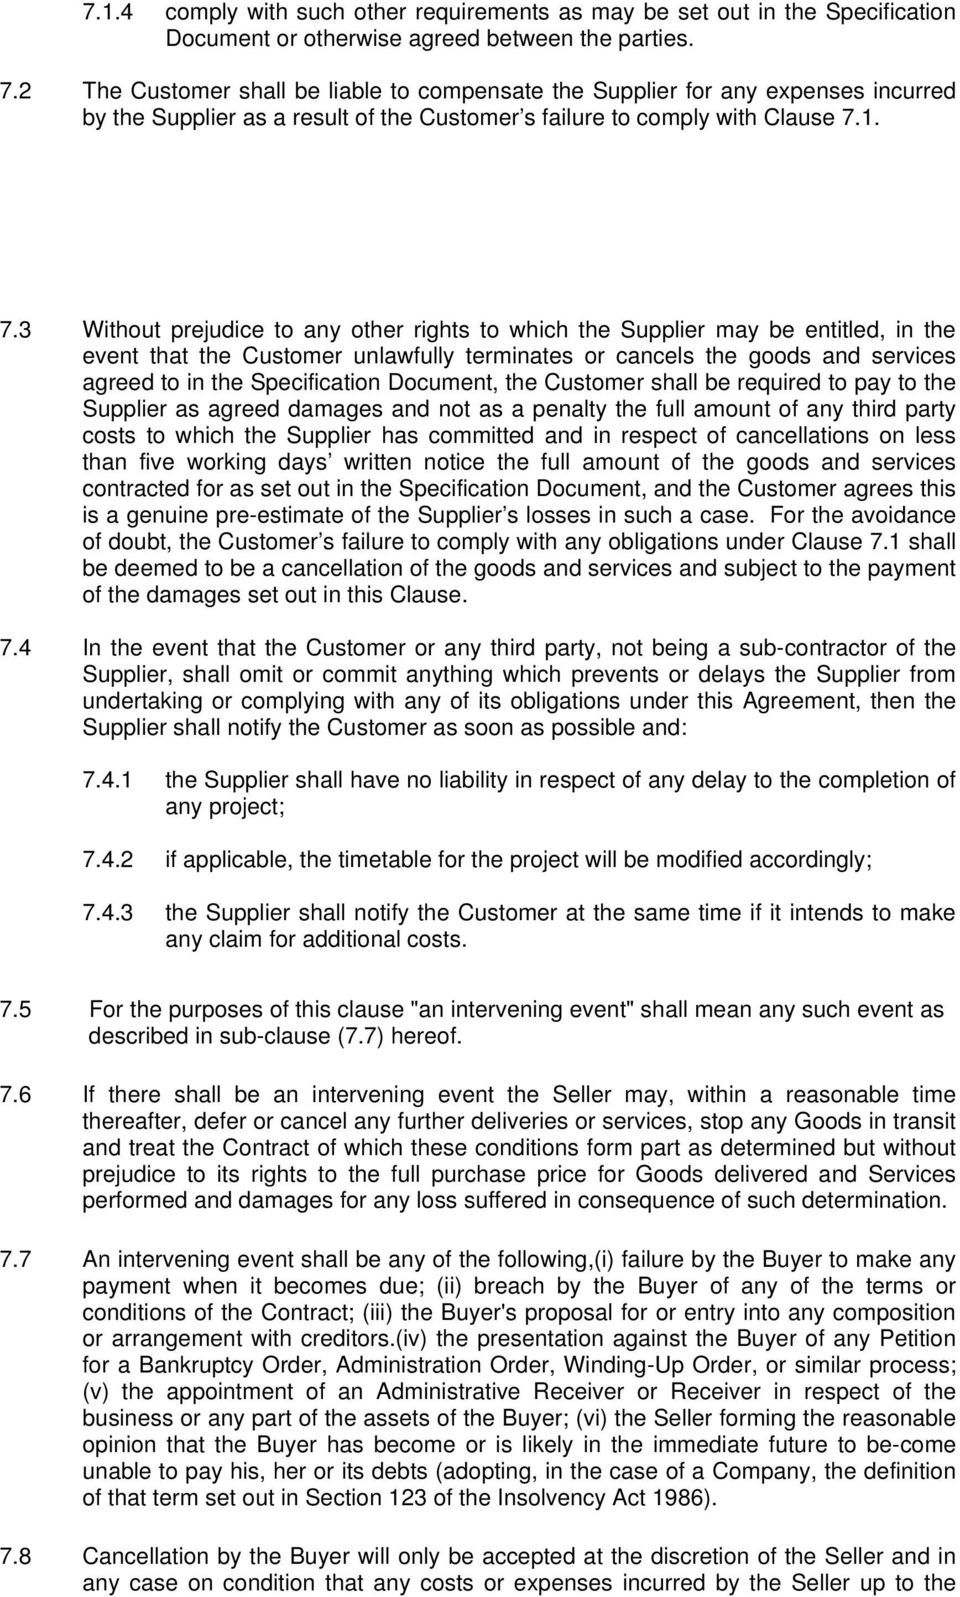 1. 7.3 Without prejudice to any other rights to which the Supplier may be entitled, in the event that the Customer unlawfully terminates or cancels the goods and services agreed to in the